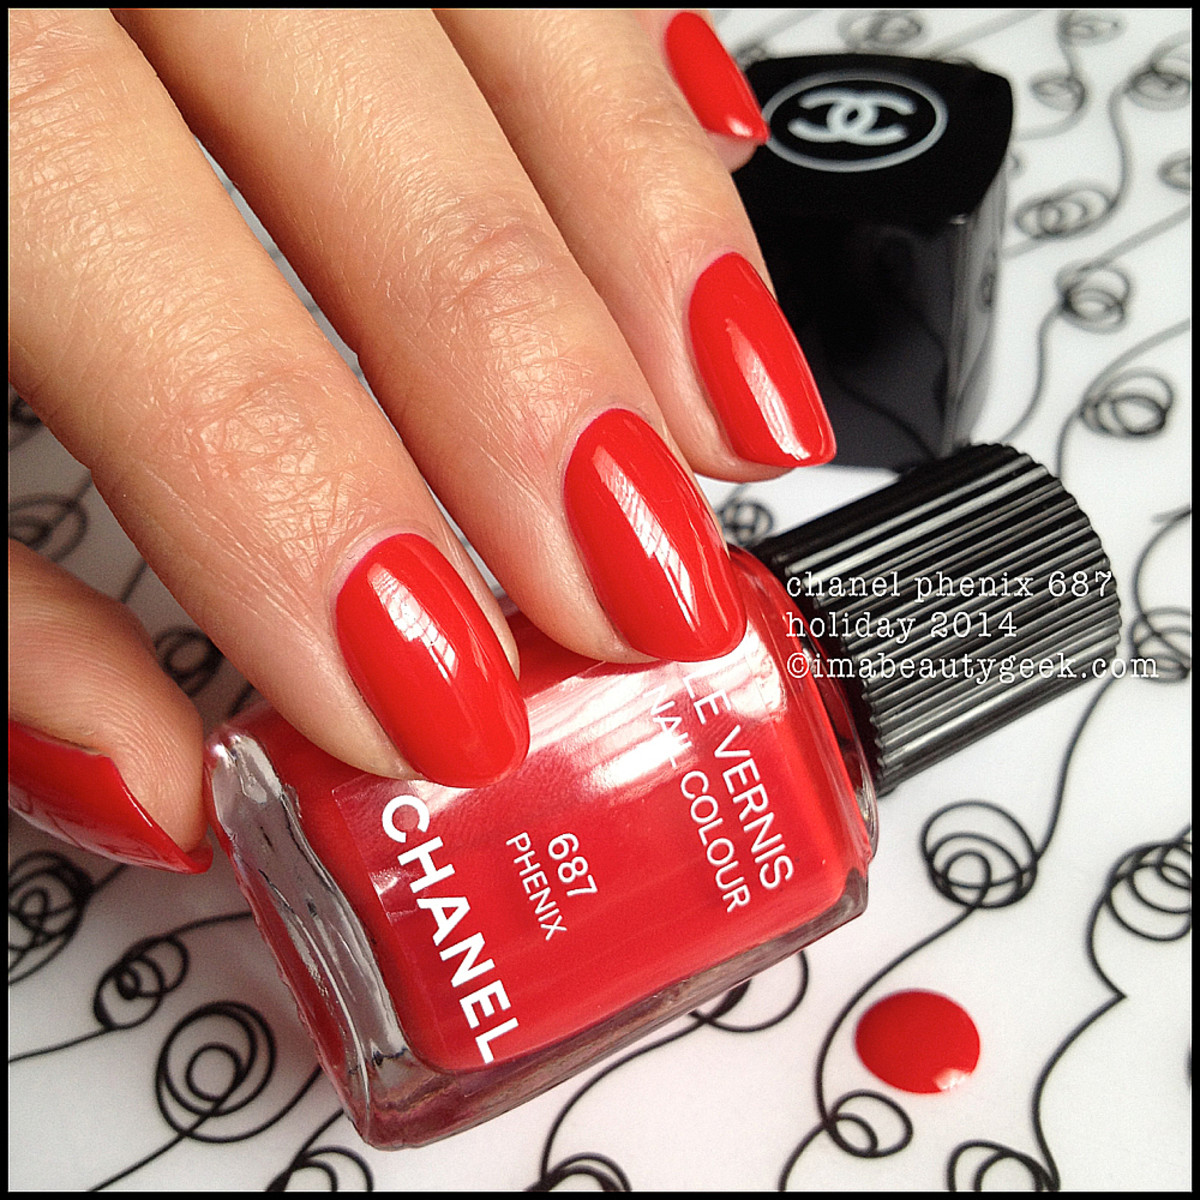 Chanel Phenix 687 Le Vernis_Chanel Holiday 2014